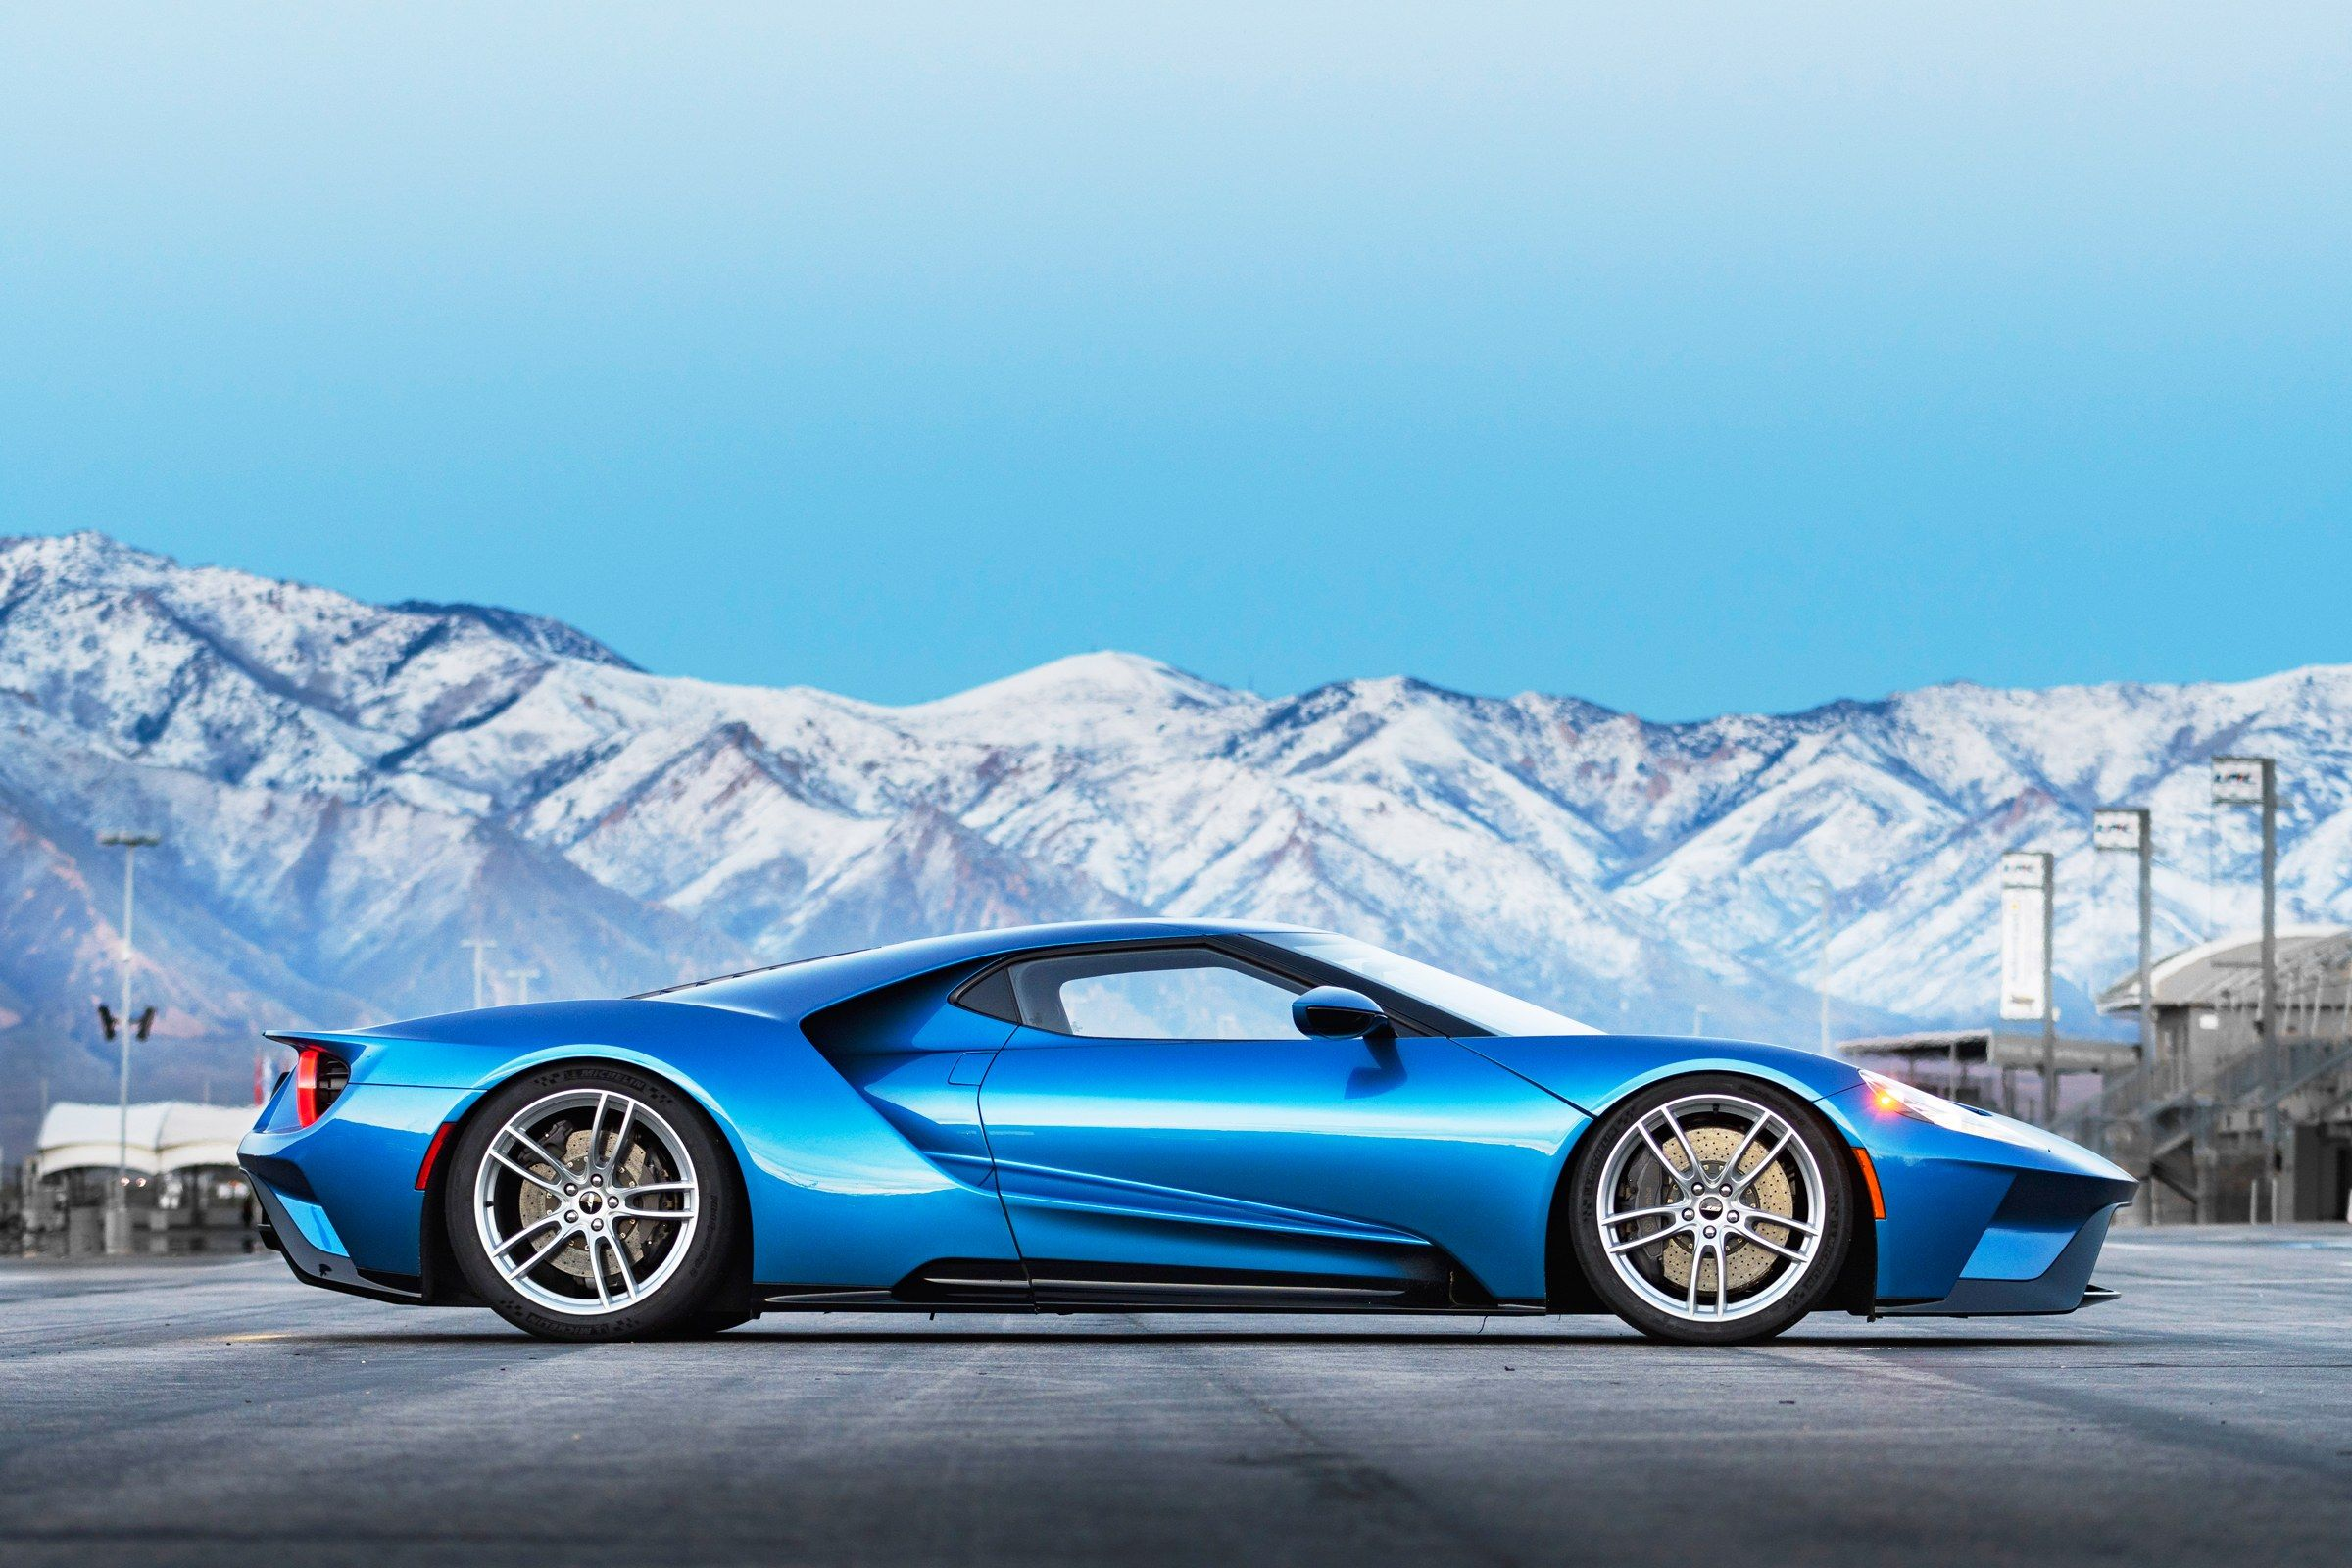 Review 2017 Ford Gt Supercar Ford Gt 2017 Ford Gt Car Ford